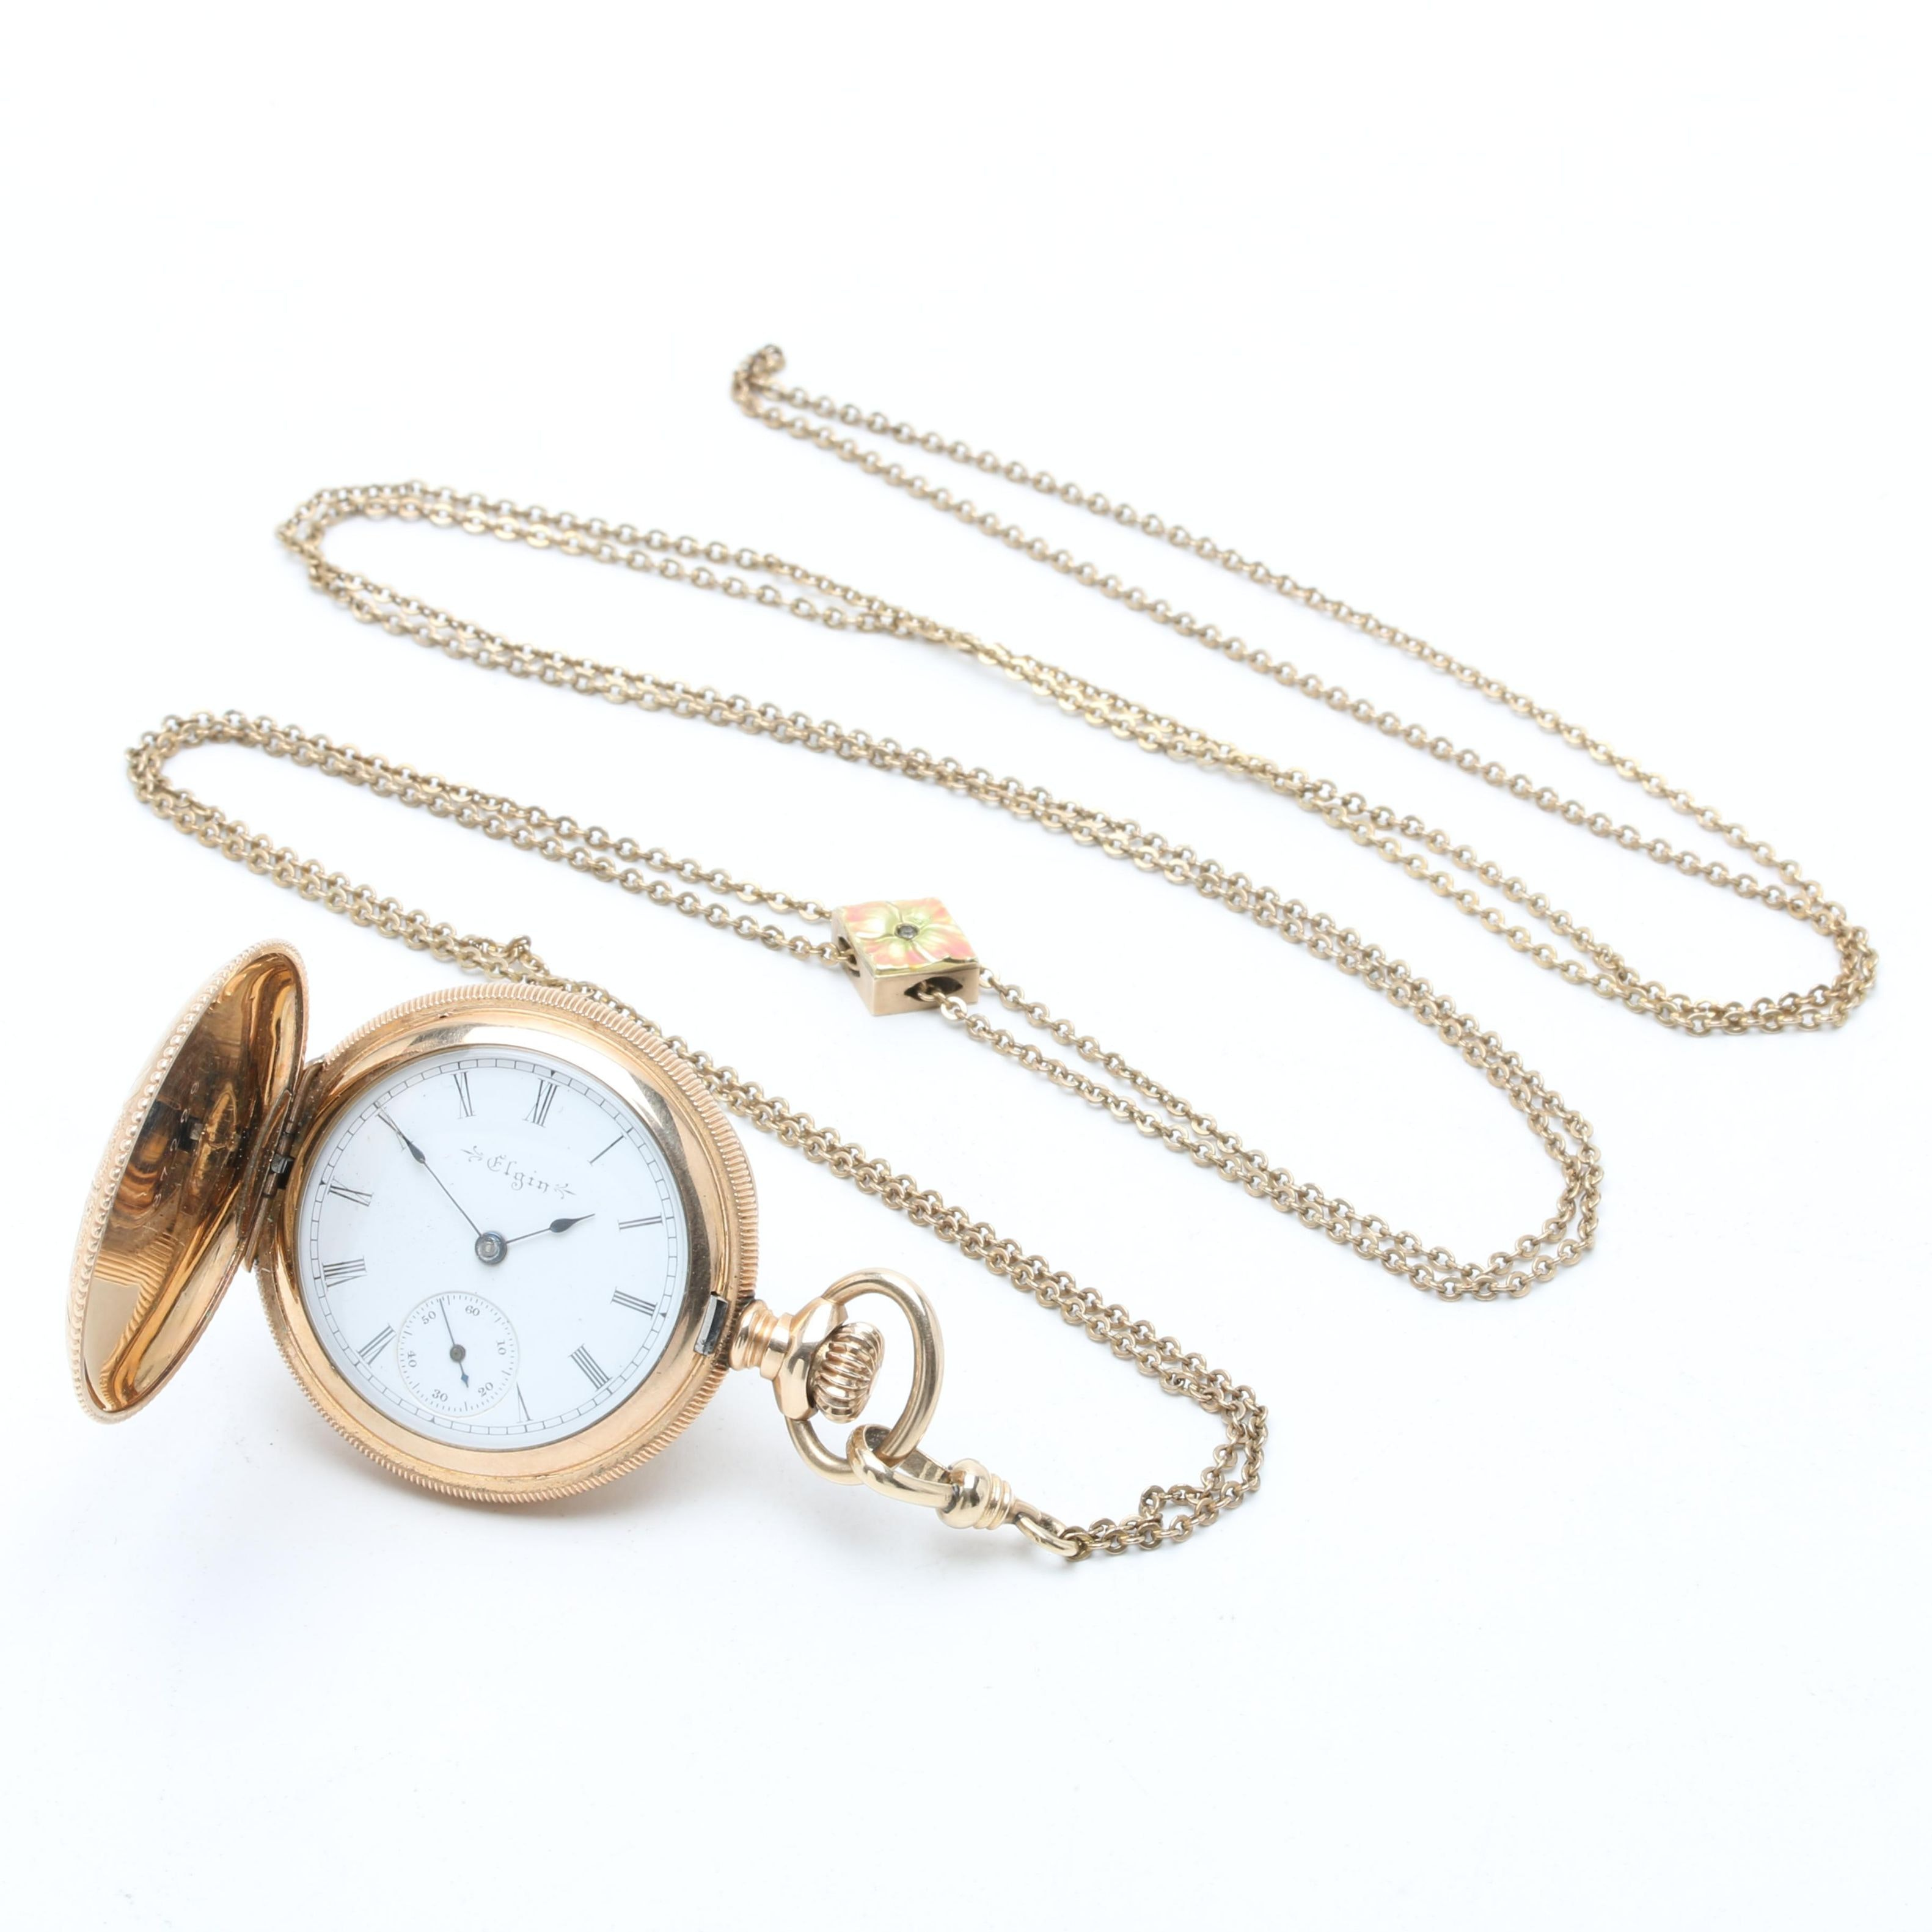 Antique Elgin Gold-Filled Pocket Watch with Fob Chain and 10K Gold Slide Charm